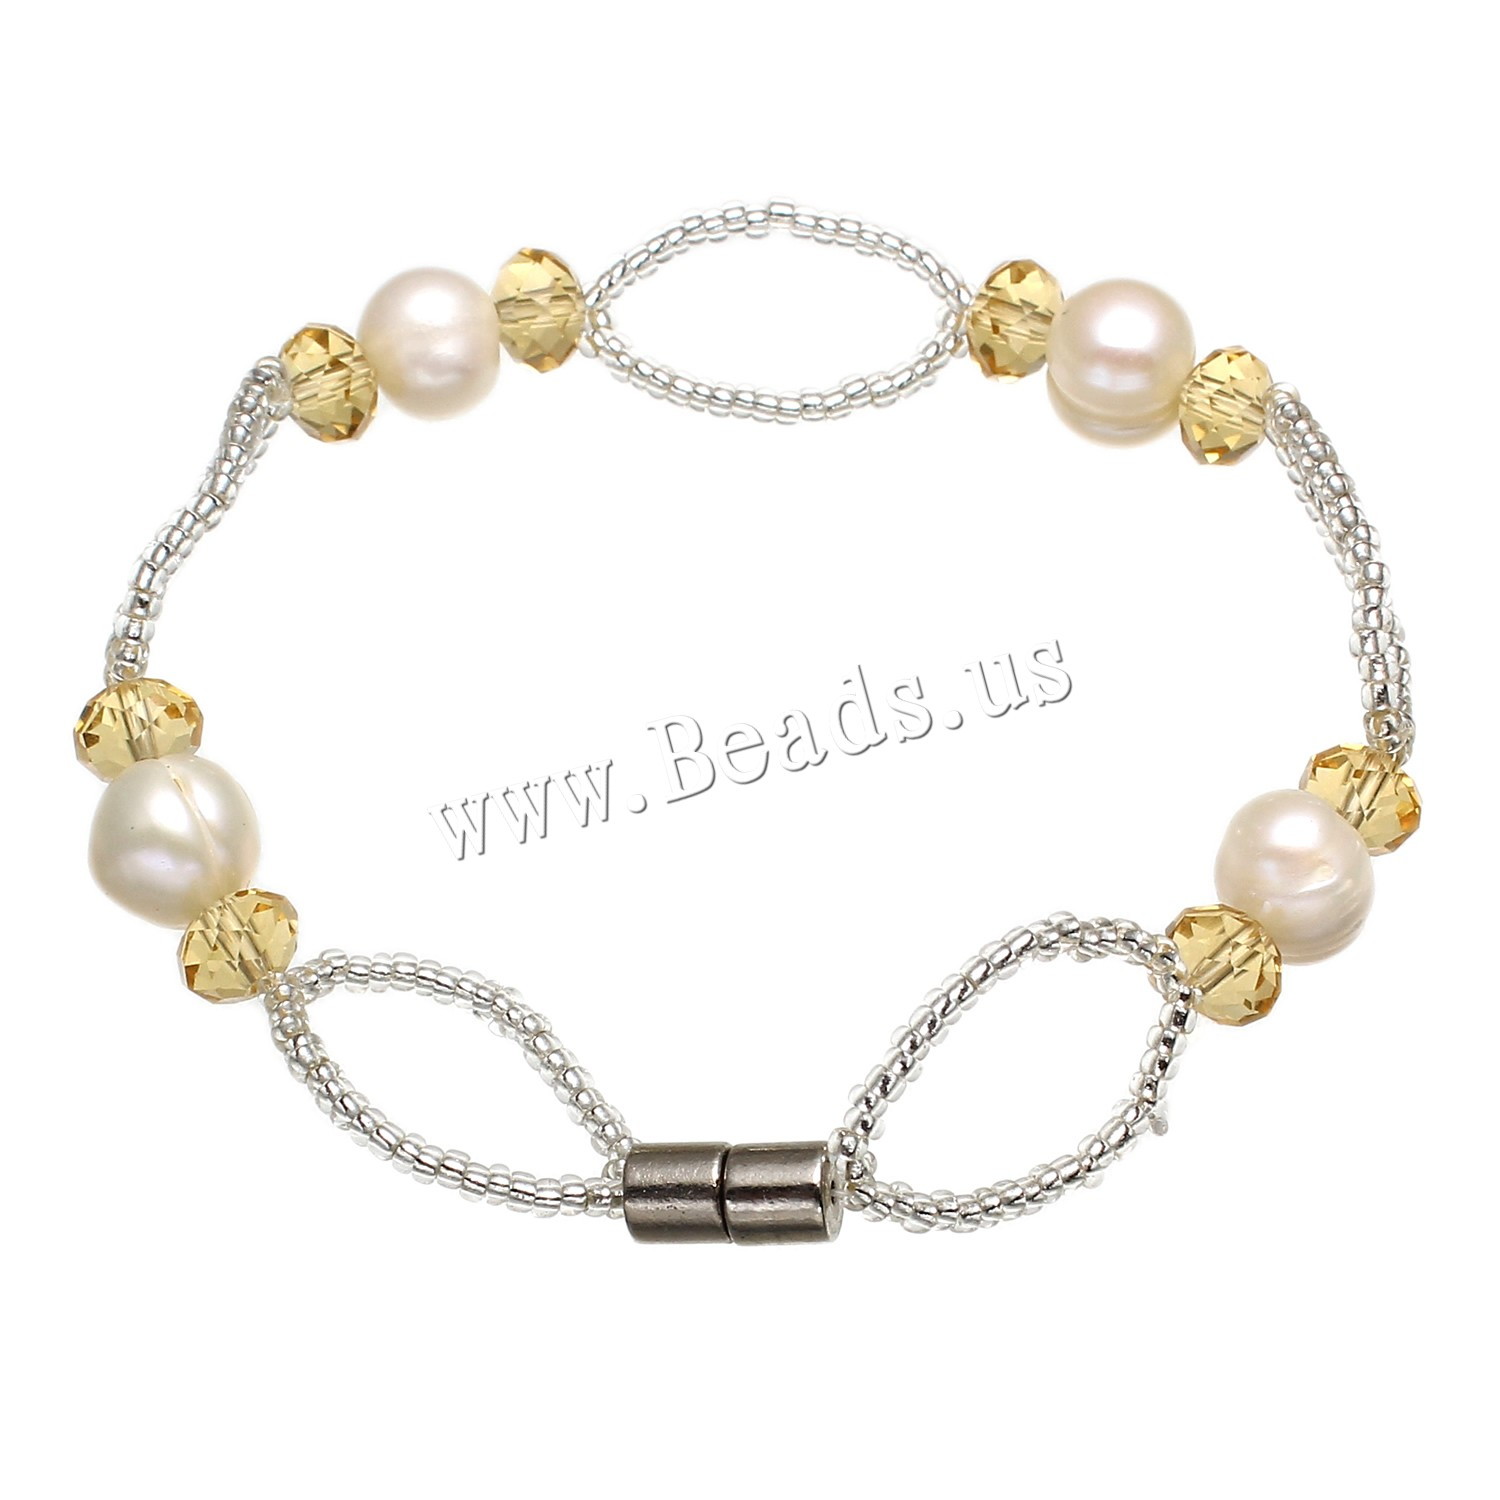 Buy Freshwater Cultured Pearl Bracelet Freshwater Pearl Crystal & Glass Seed Beads Potato woman & faceted white 8-9mm Sold Per Approx 7.5 Inch Strand